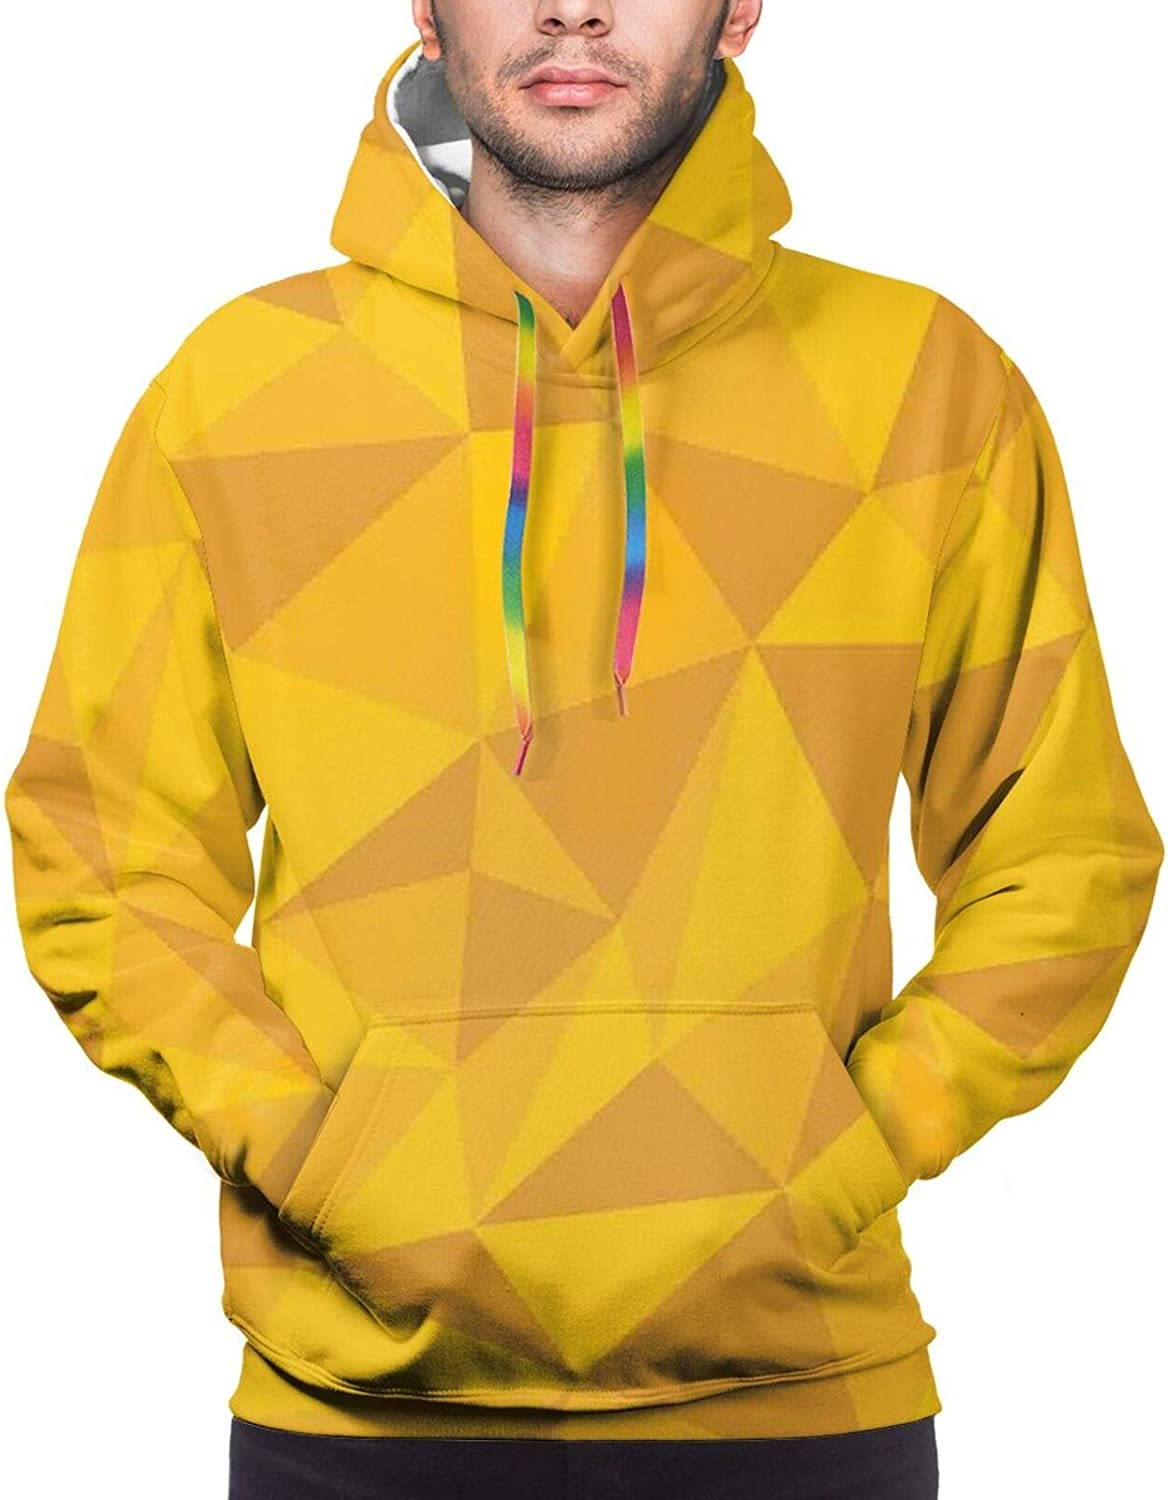 Men's Hoodies Sweatshirts,Abstract Triangles with Doodle Style Alpacas in Monochrome Cartoon Pattern